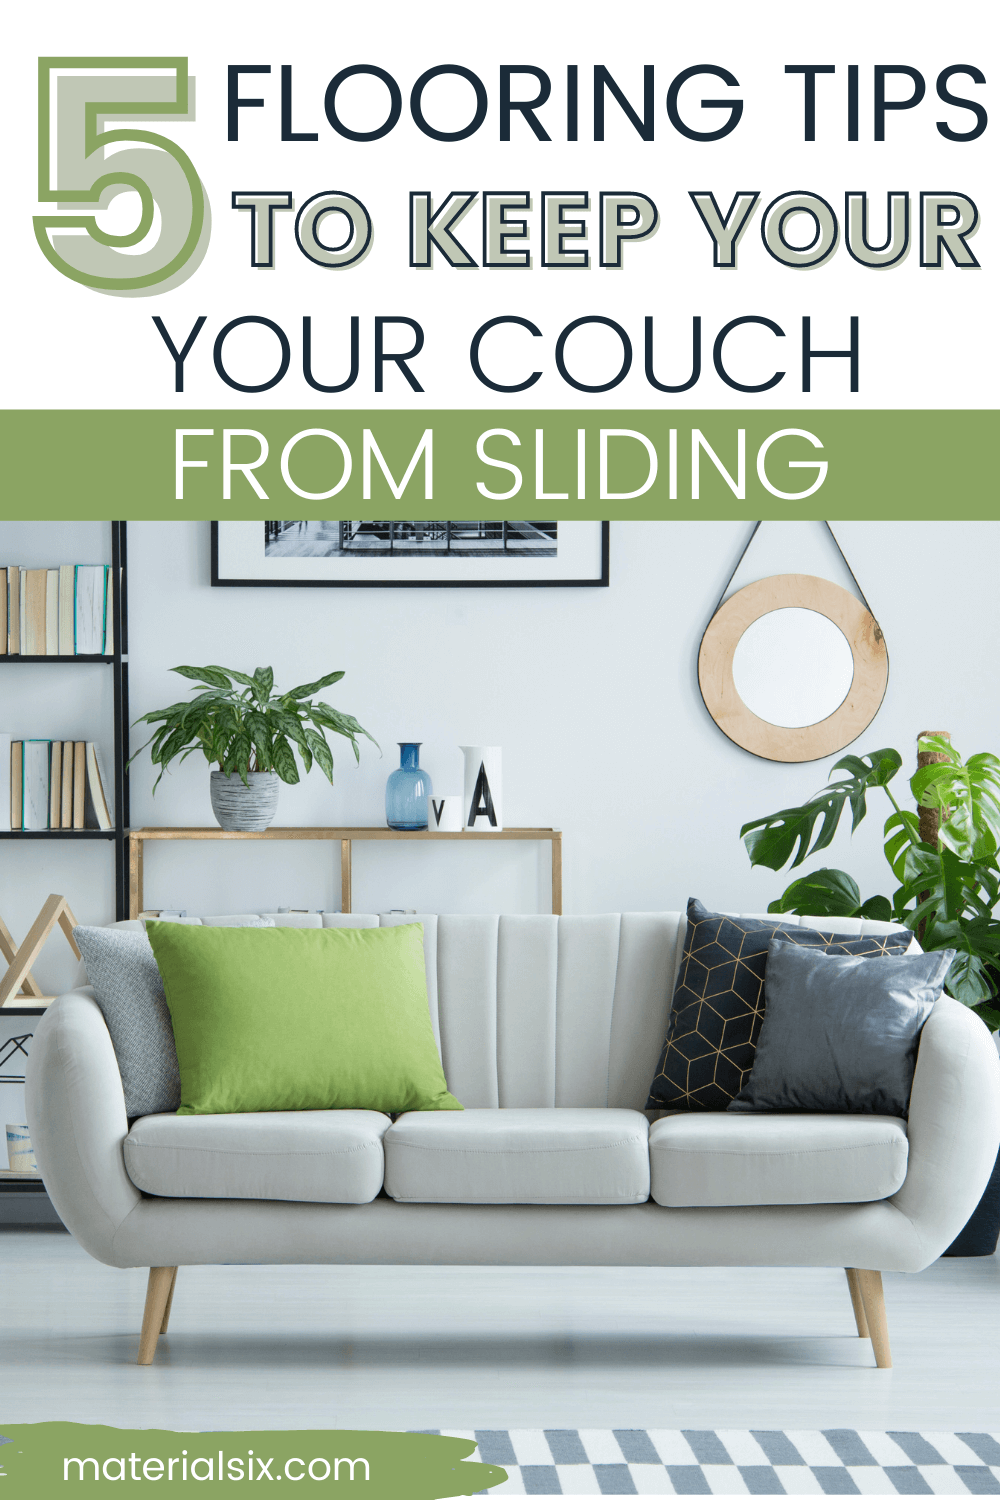 How to Keep Your Couch from Sliding